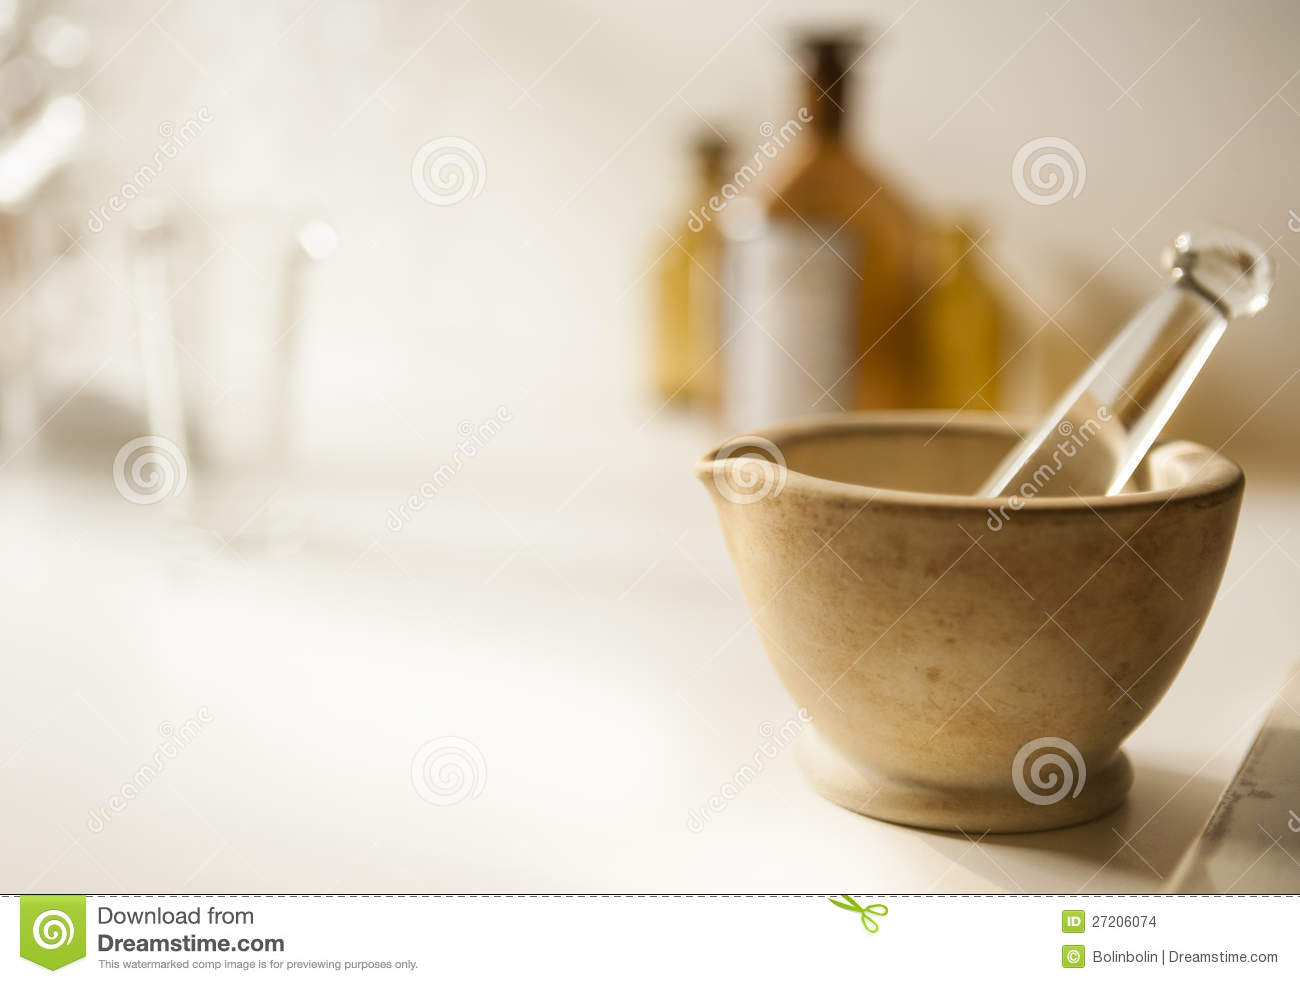 Mortar and pestle with drug vial and bottles